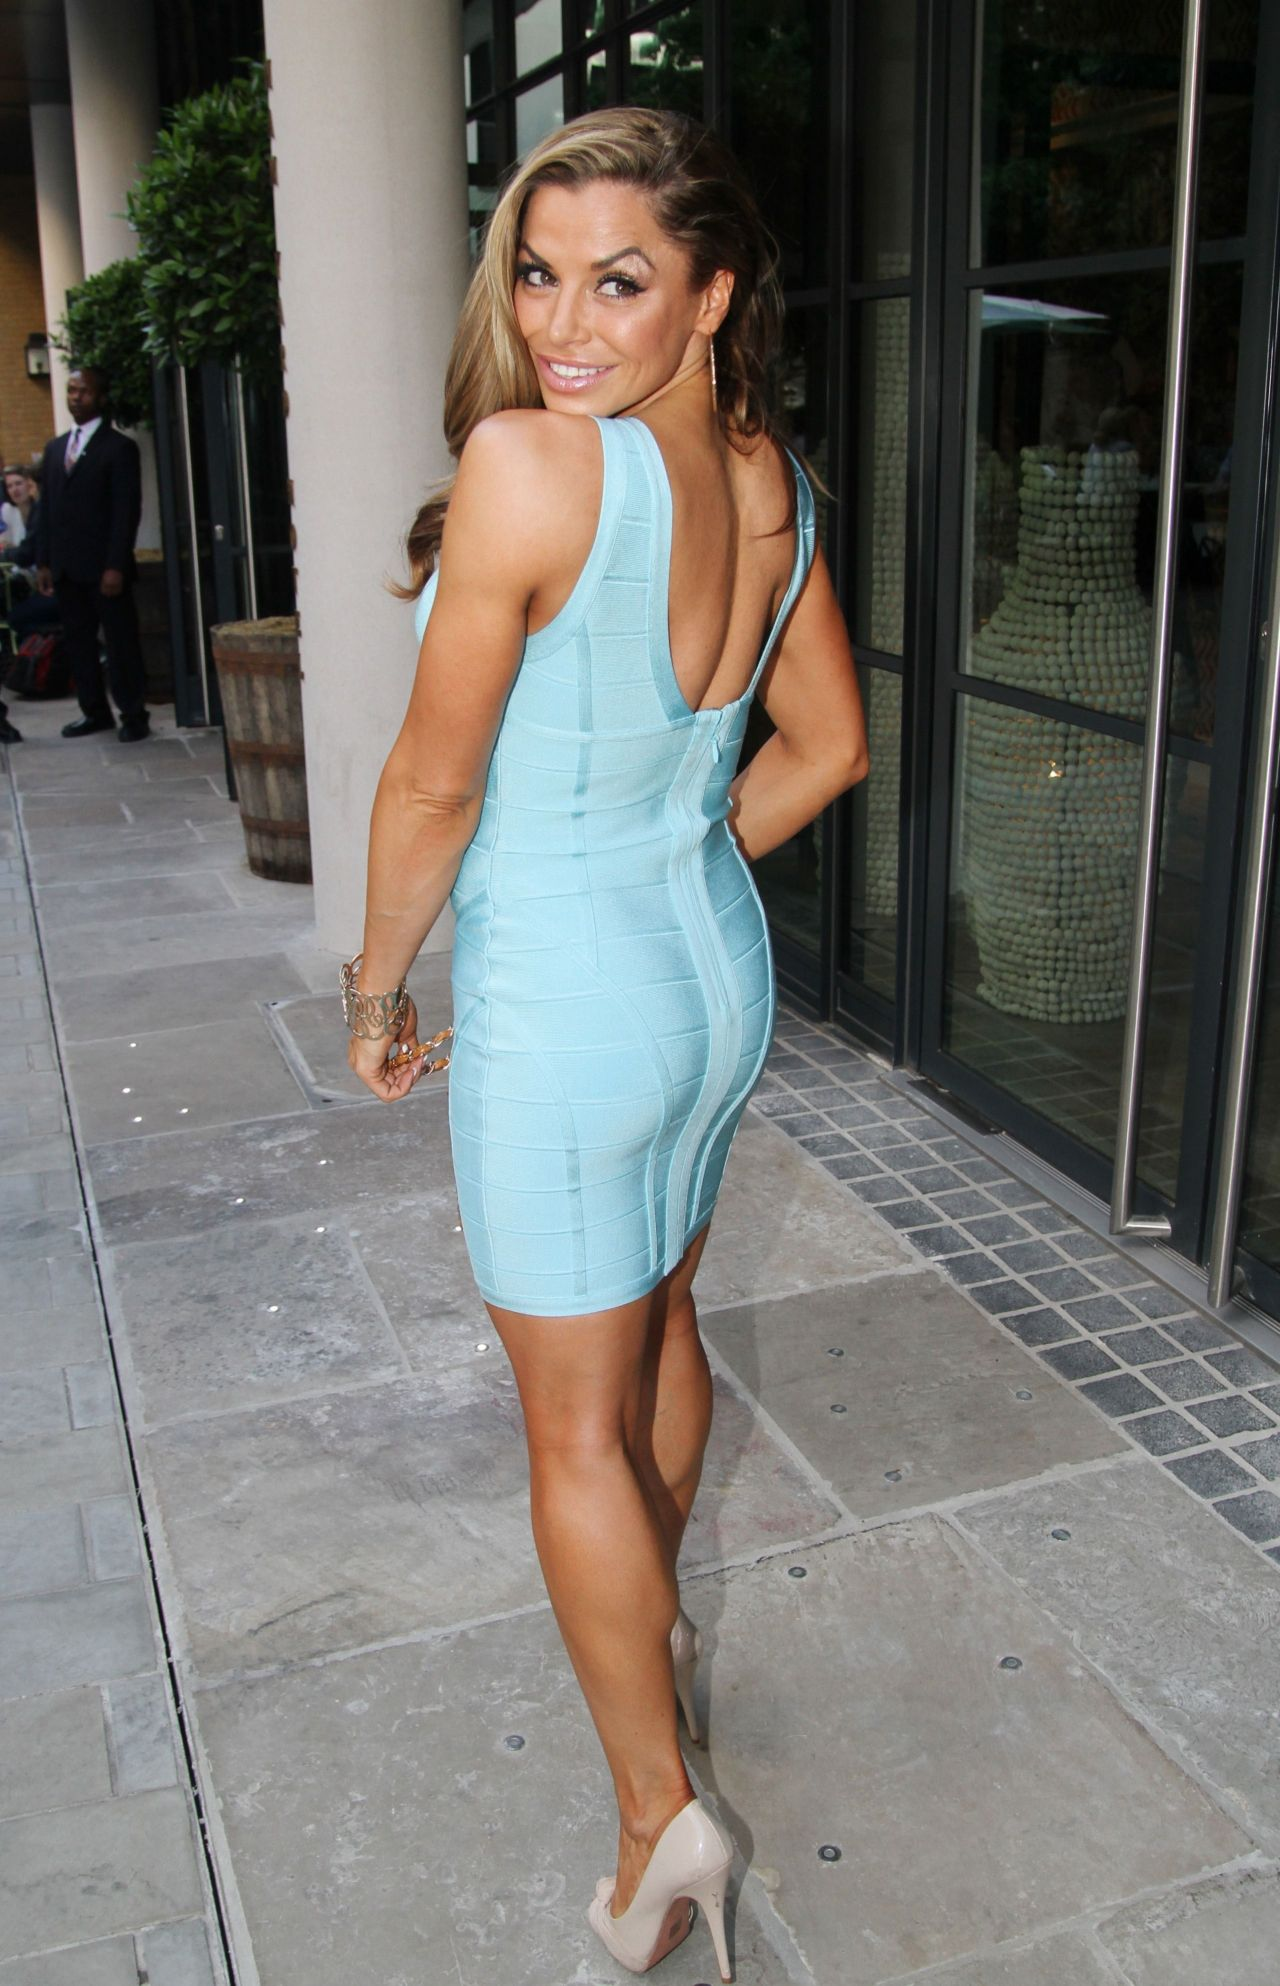 Louise Glover Anomaly Premiere In London